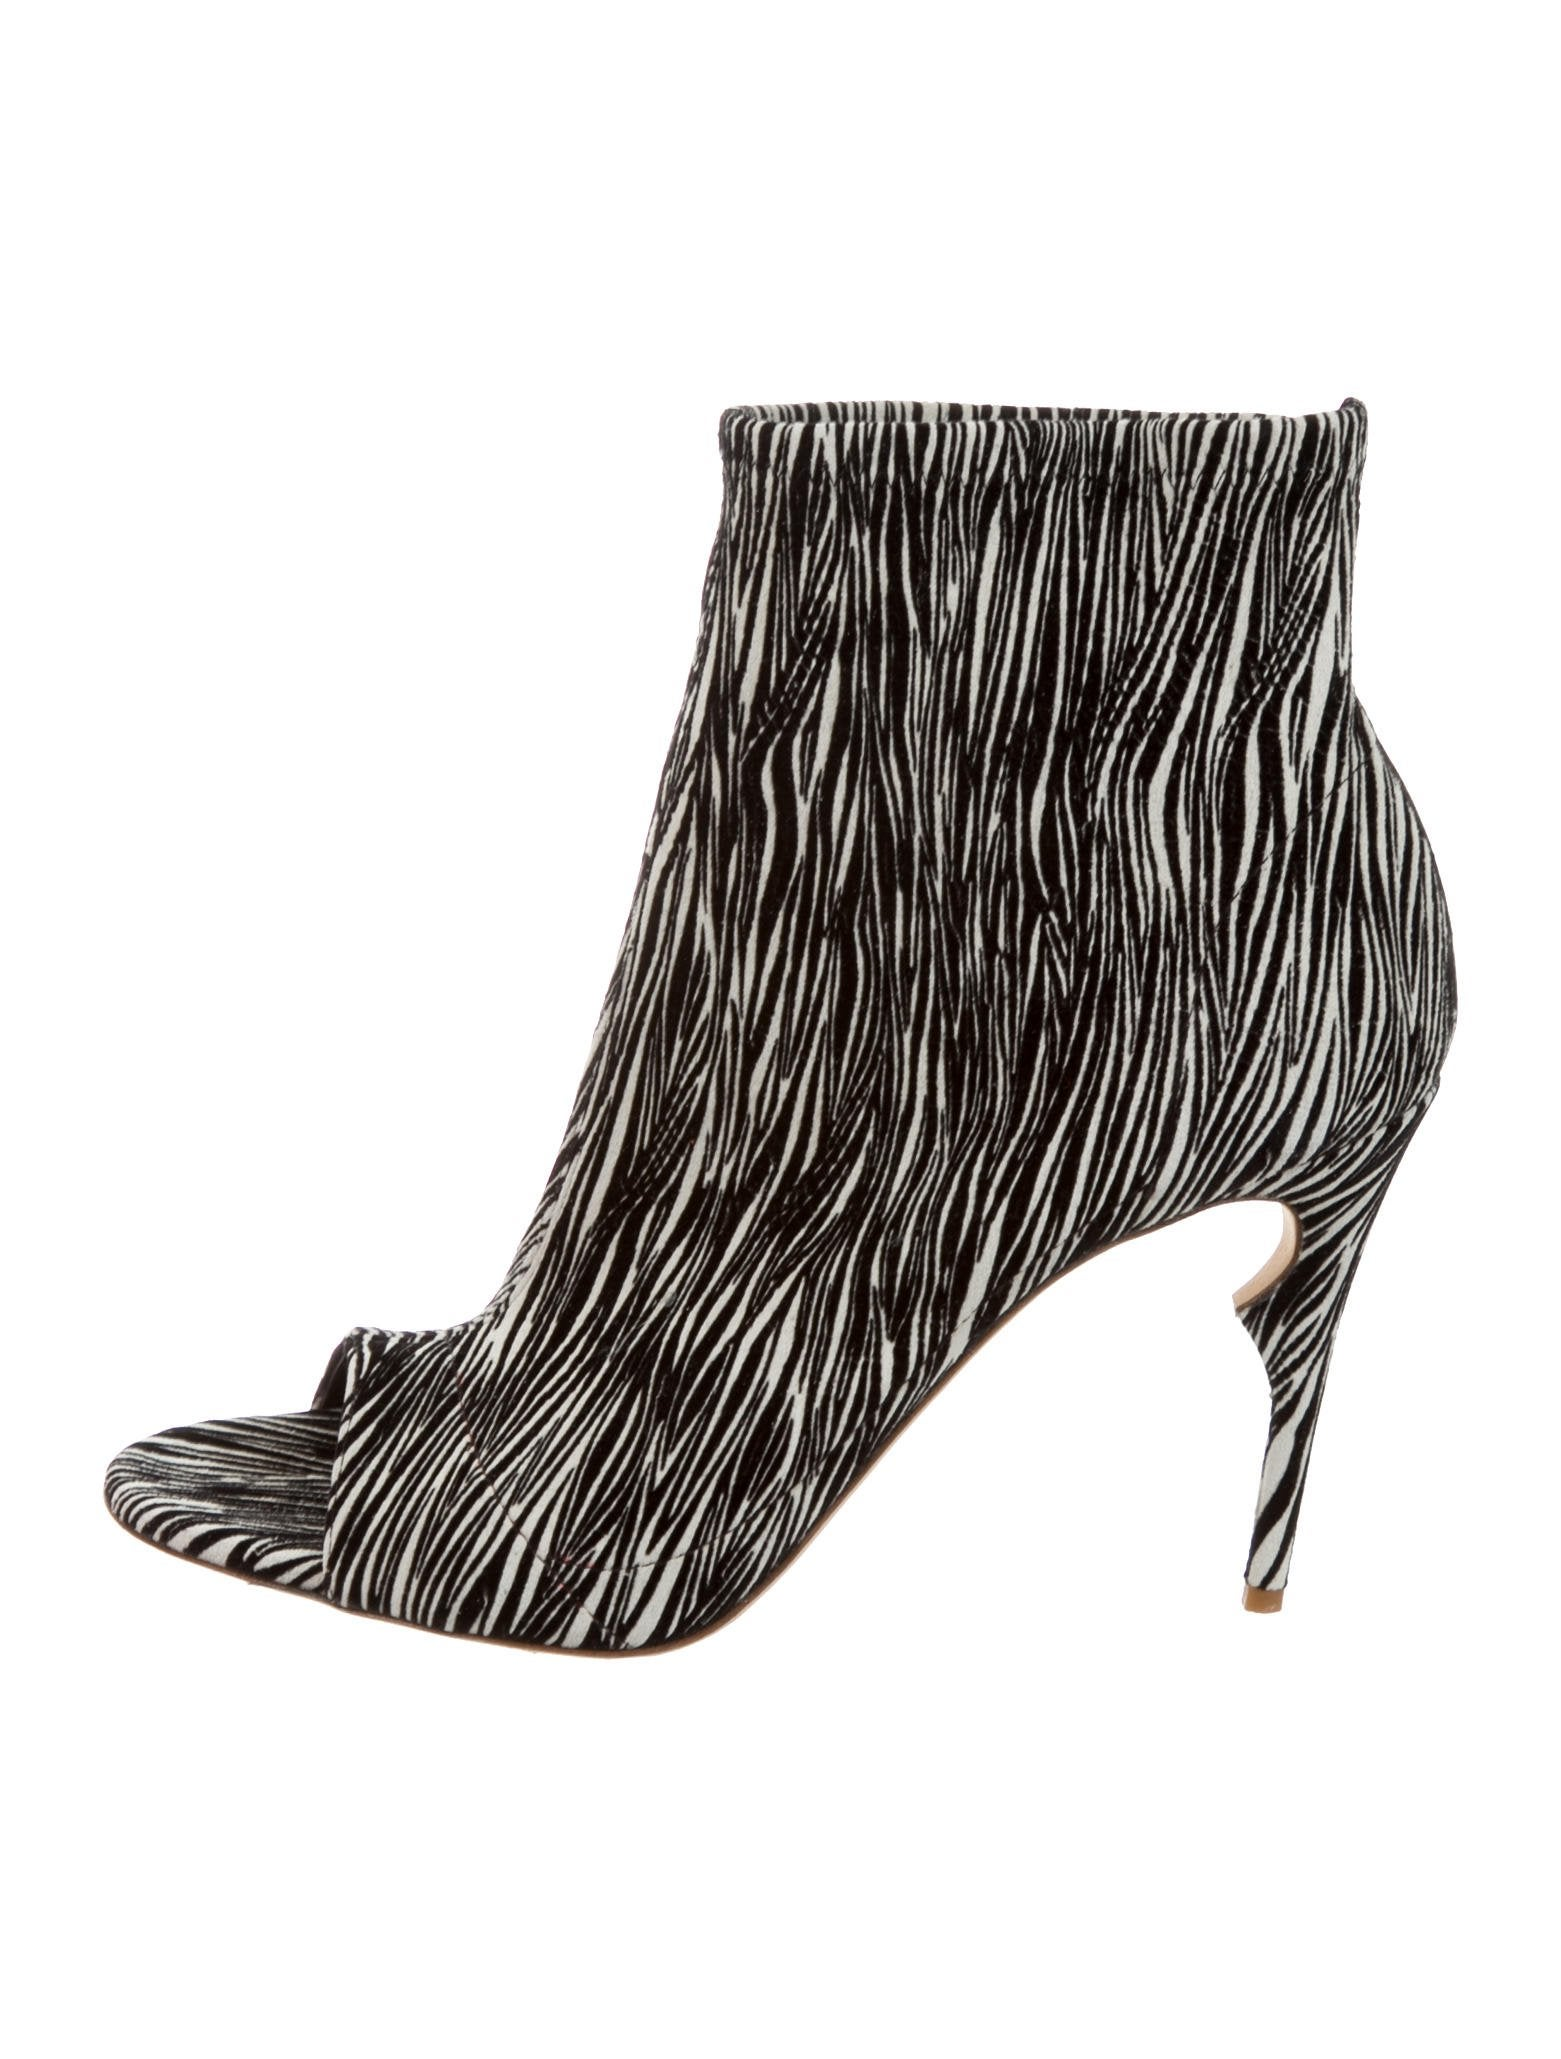 Jerome C. Rousseau Zebra Print Peep-Toe Booties free shipping good selling sale extremely cheap classic I3FmjSBV2b